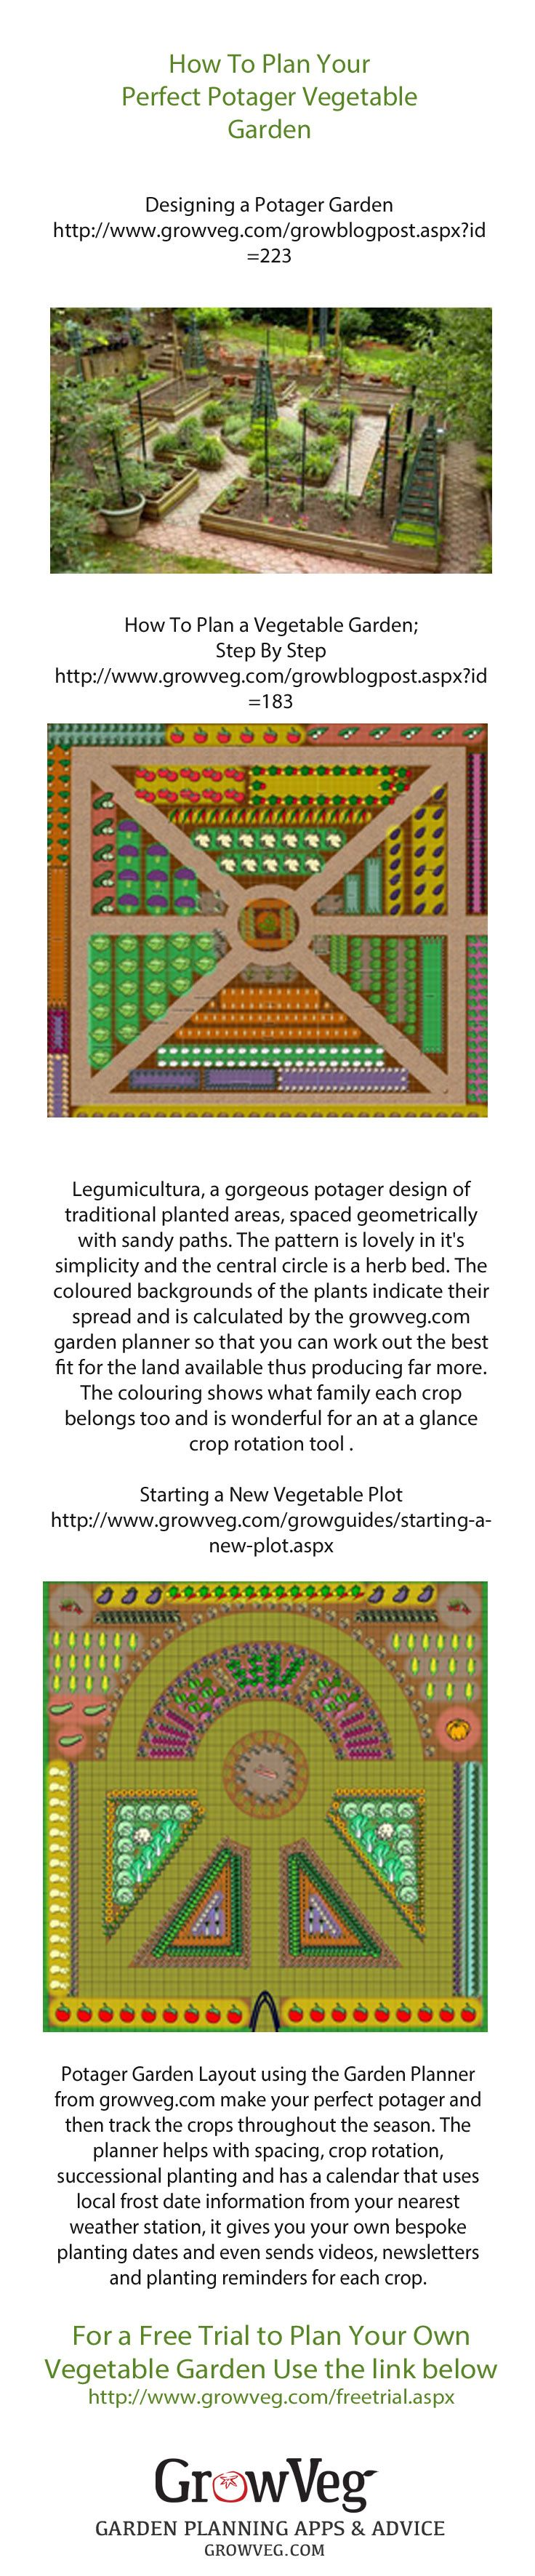 How to design a new potager ve able garden from scratch for the